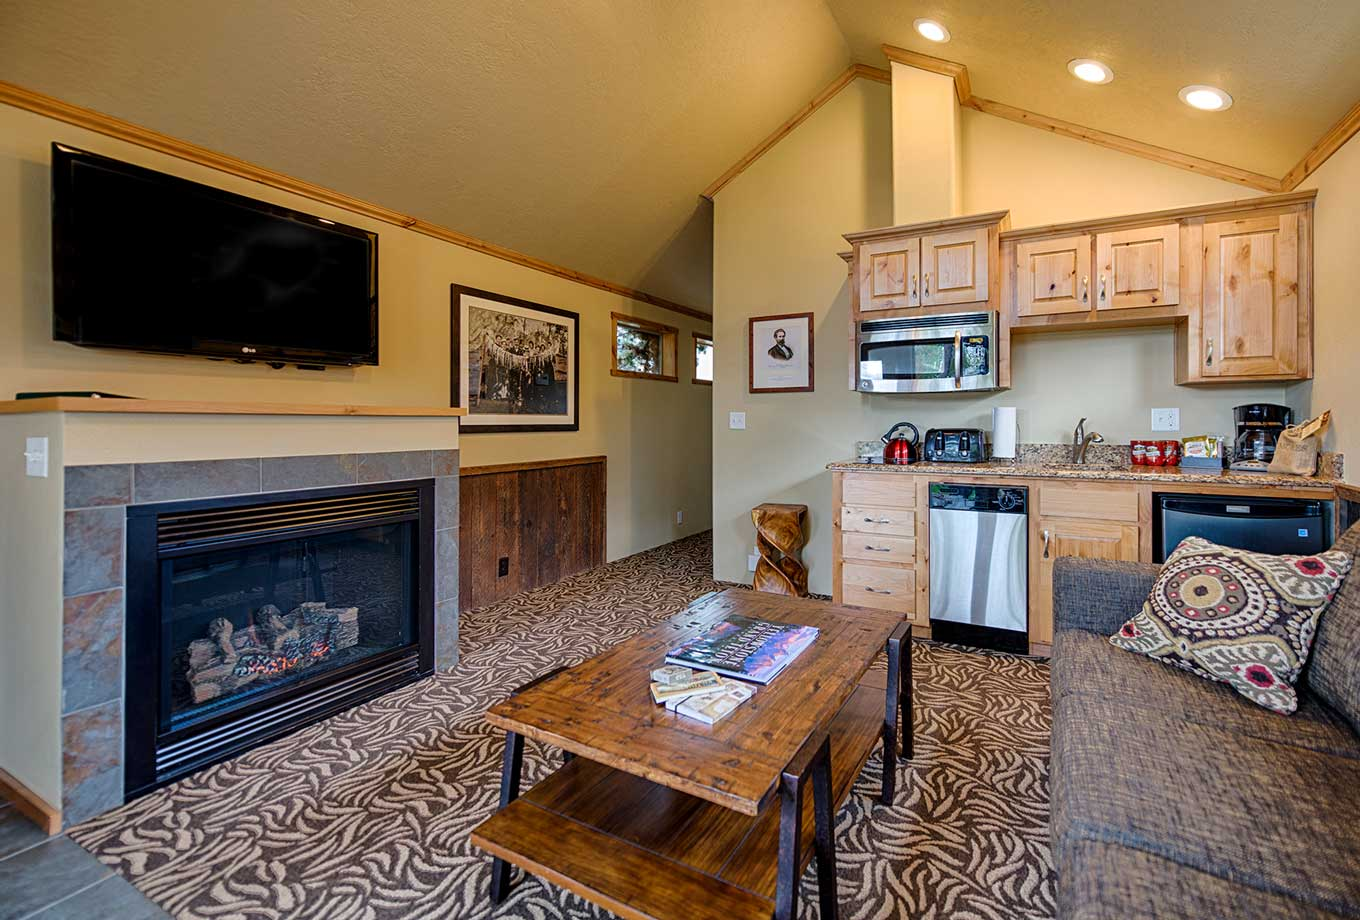 West Yellowstone Explorer Cabins kitchenette and living room